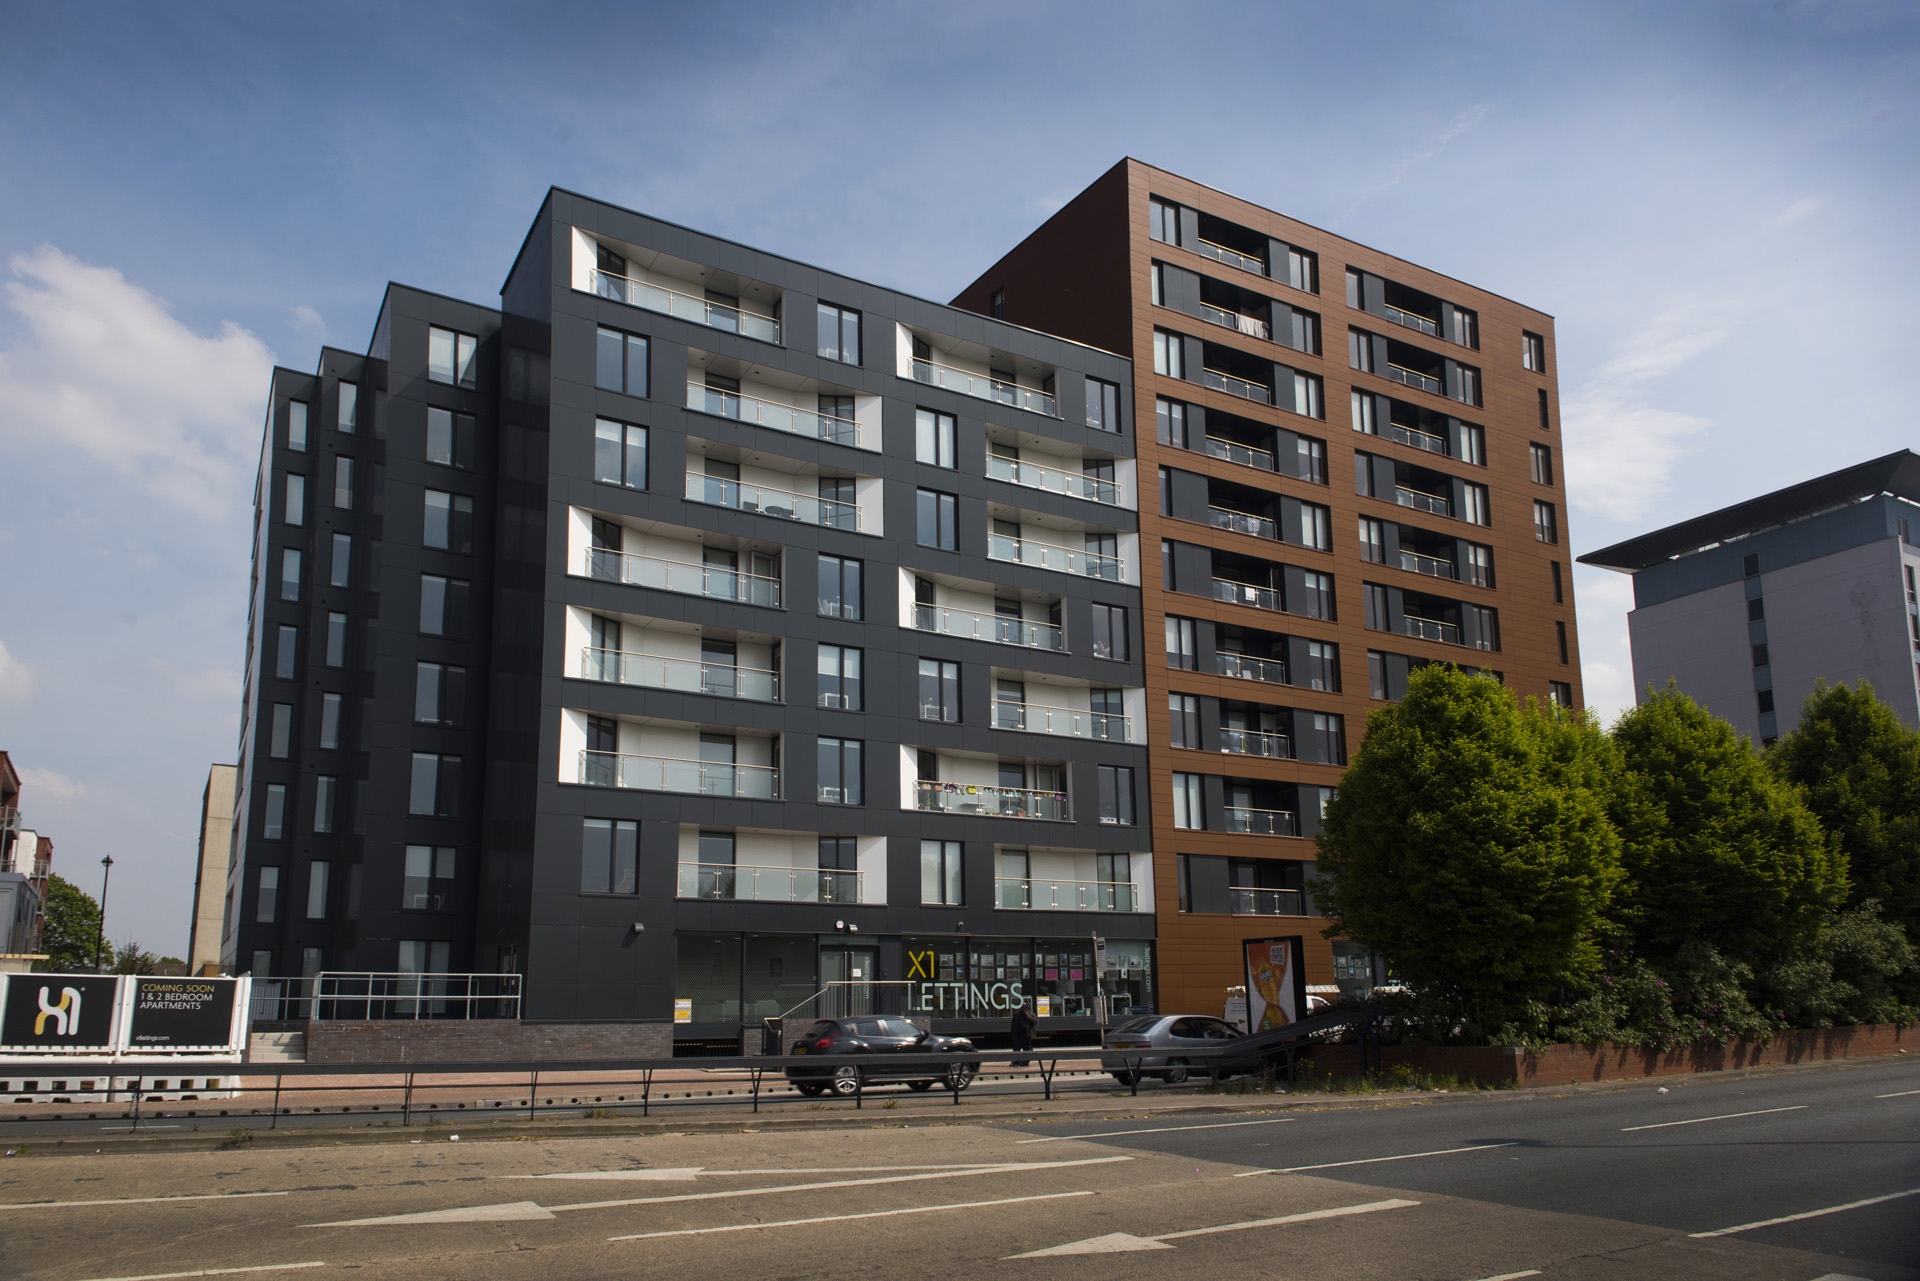 Apartments: The Exchange, Salford